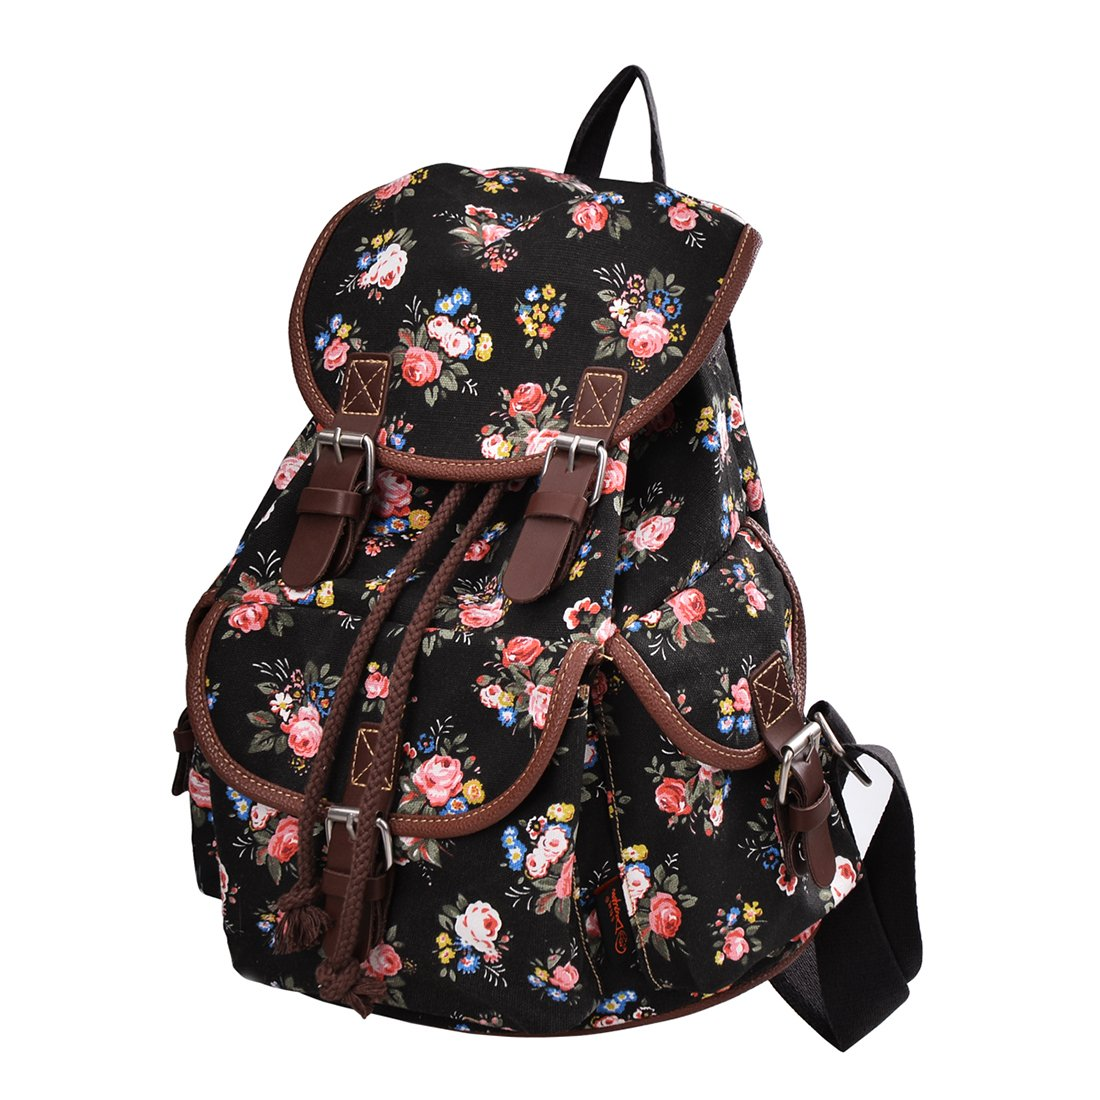 17badd7dae8d Amazon.com  Epokris Black Backpack for Girls Floral School Bags for Girls  Backpack Book Bag for Girls Daypack Floral Backpack for teens Girls 163BL   Toys   ...